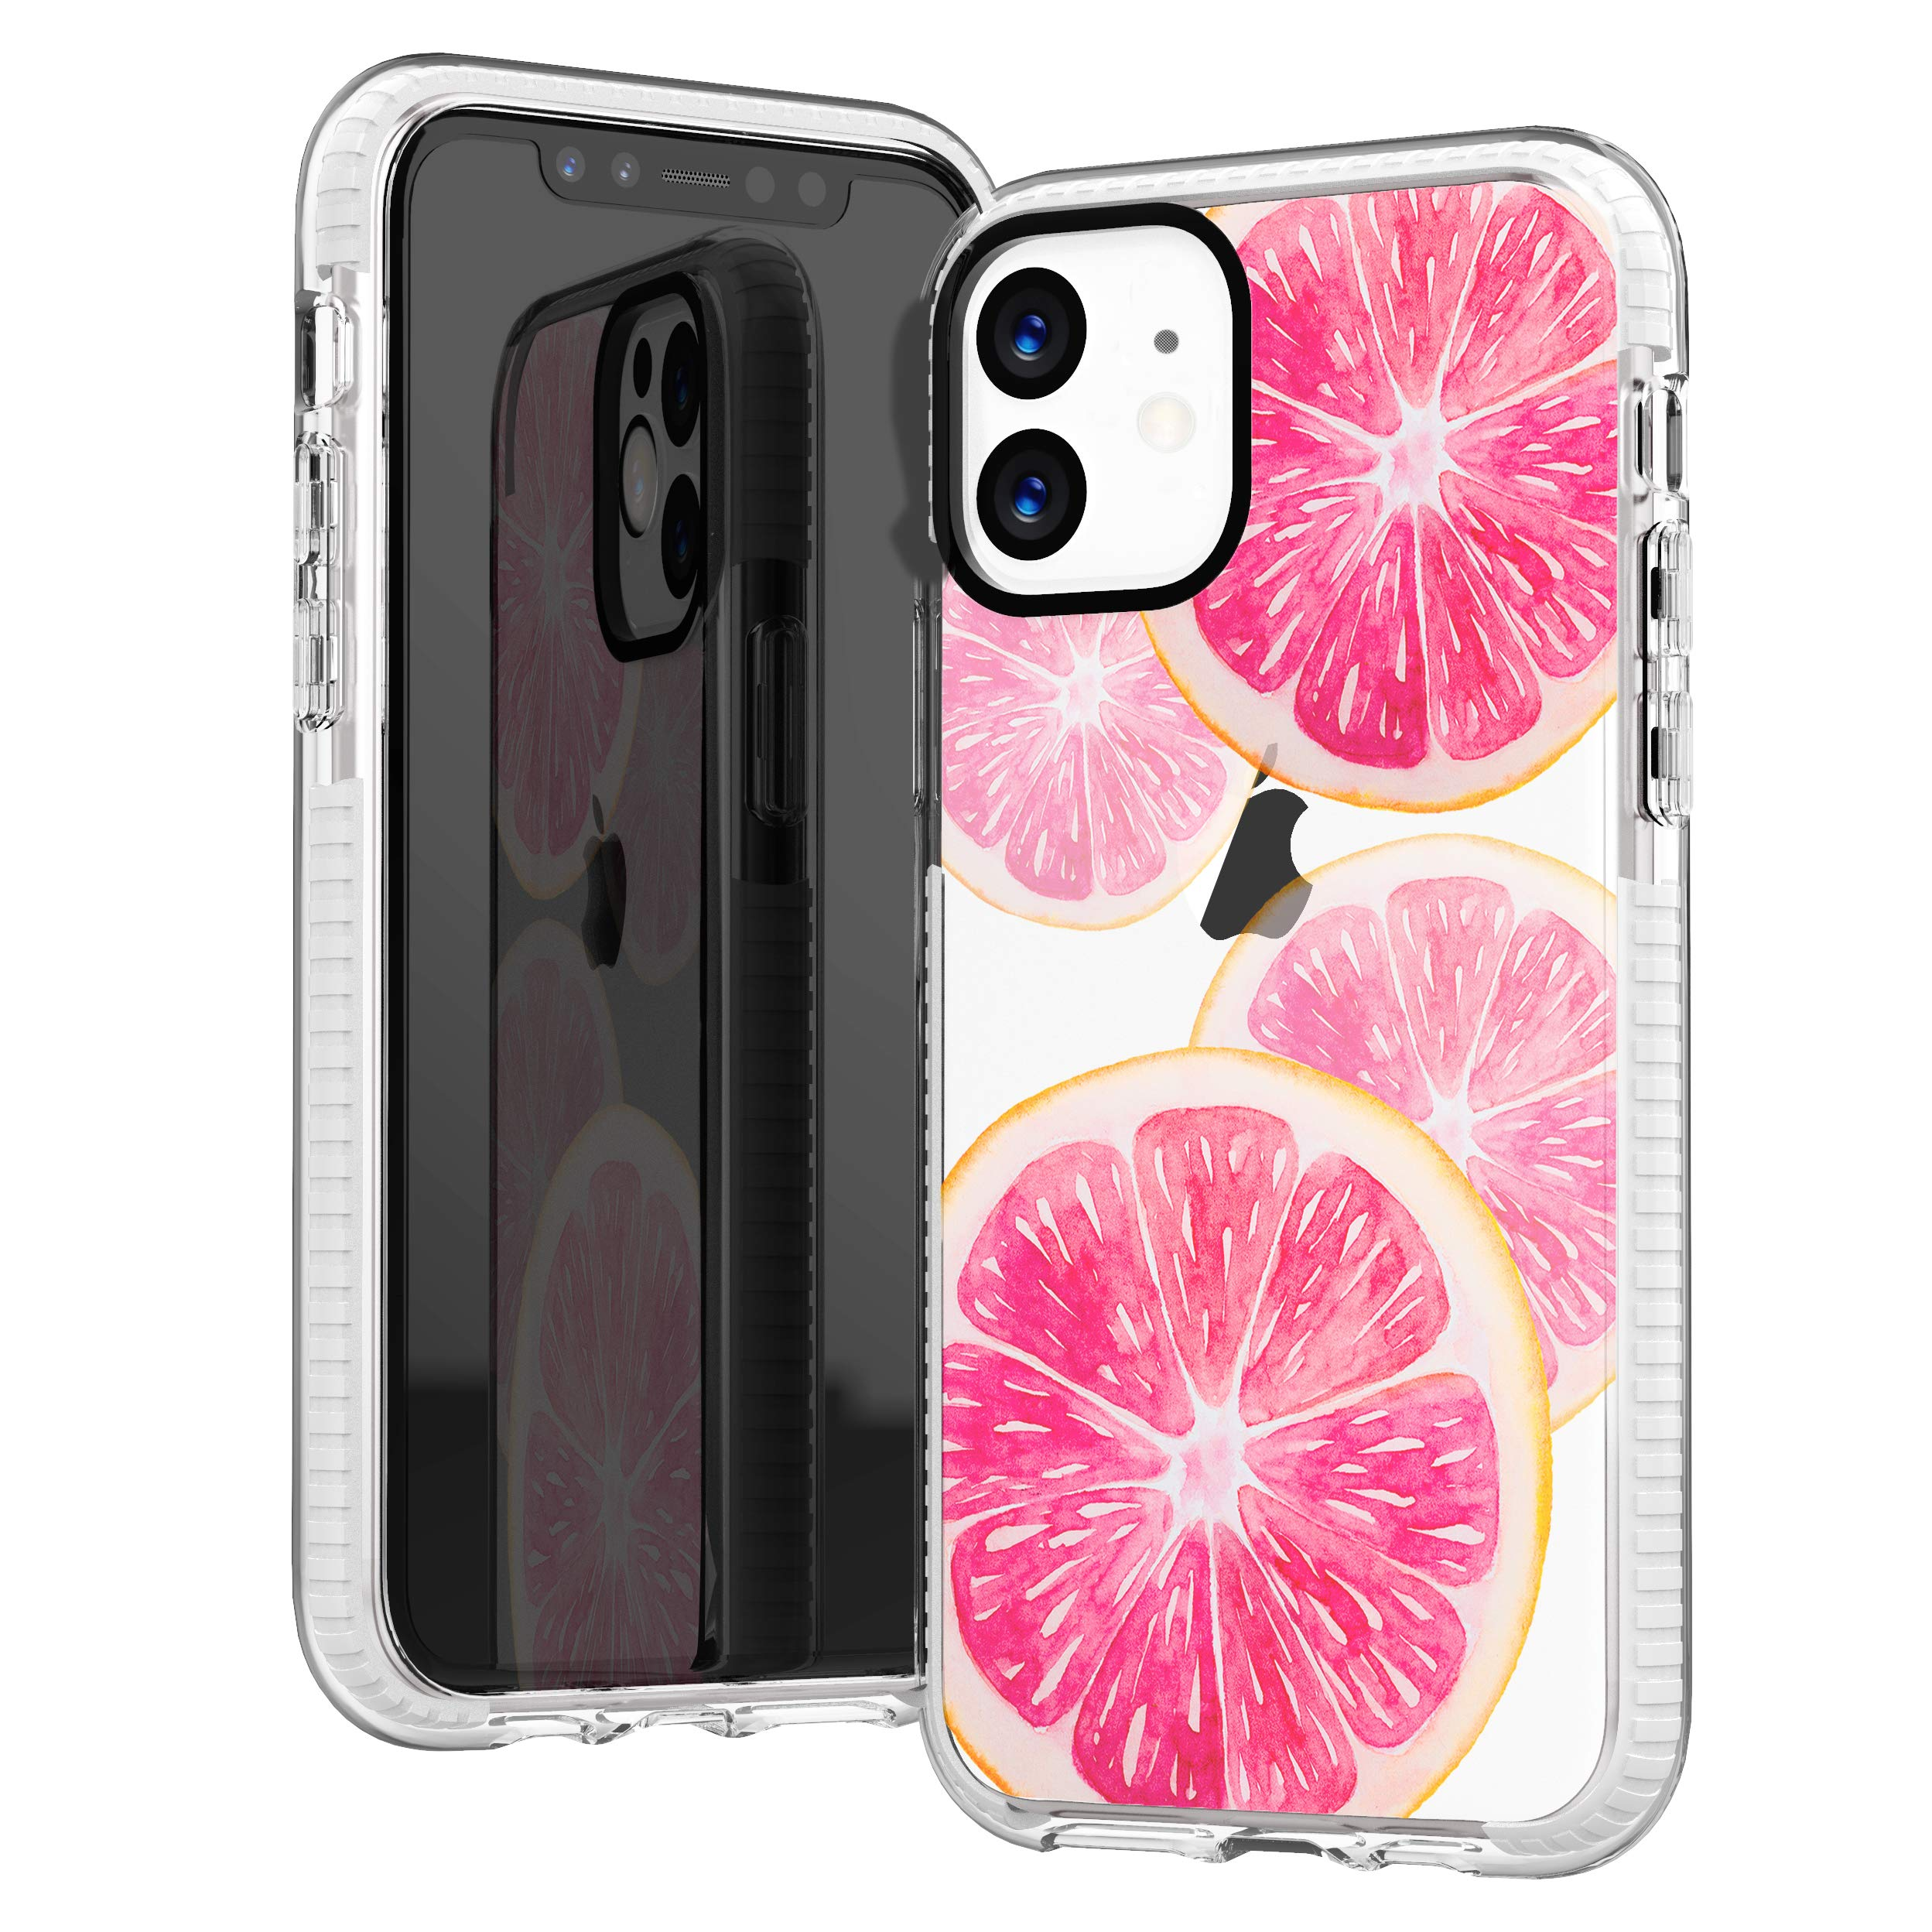 iPhone 11 Case,Funny Pink Peach Sweet Fruits Orange Grapefruits Aloha Summer Tropical Beach Trendy Cute Girl Women Beach Chic Girlly Soft Protective Clear Case with Design Compatible for iPhone 11